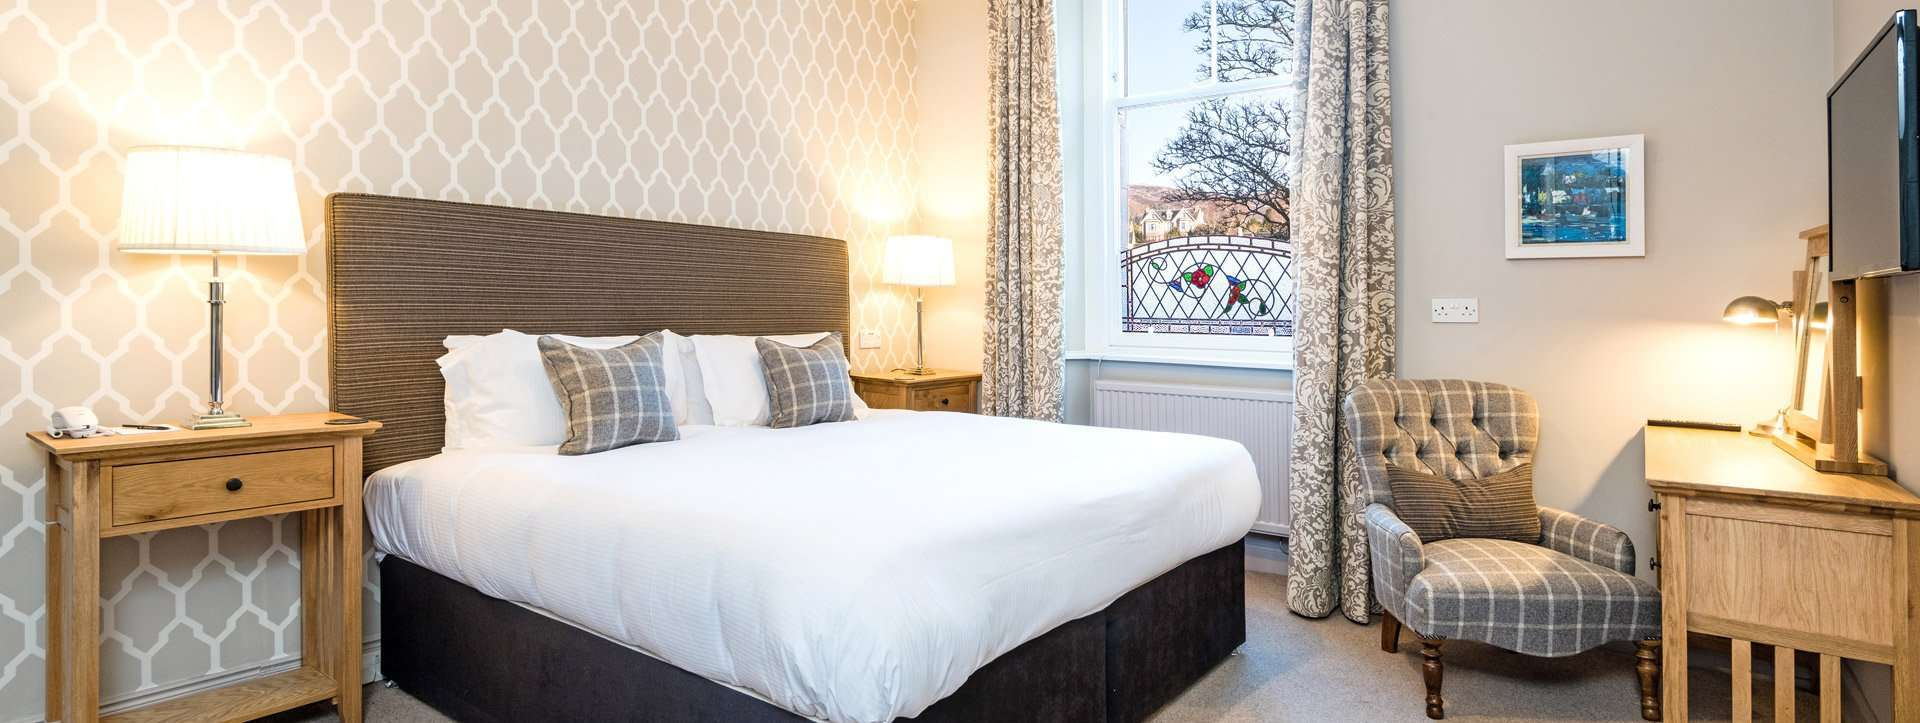 Classic Rooms - Hotel Pitlochry